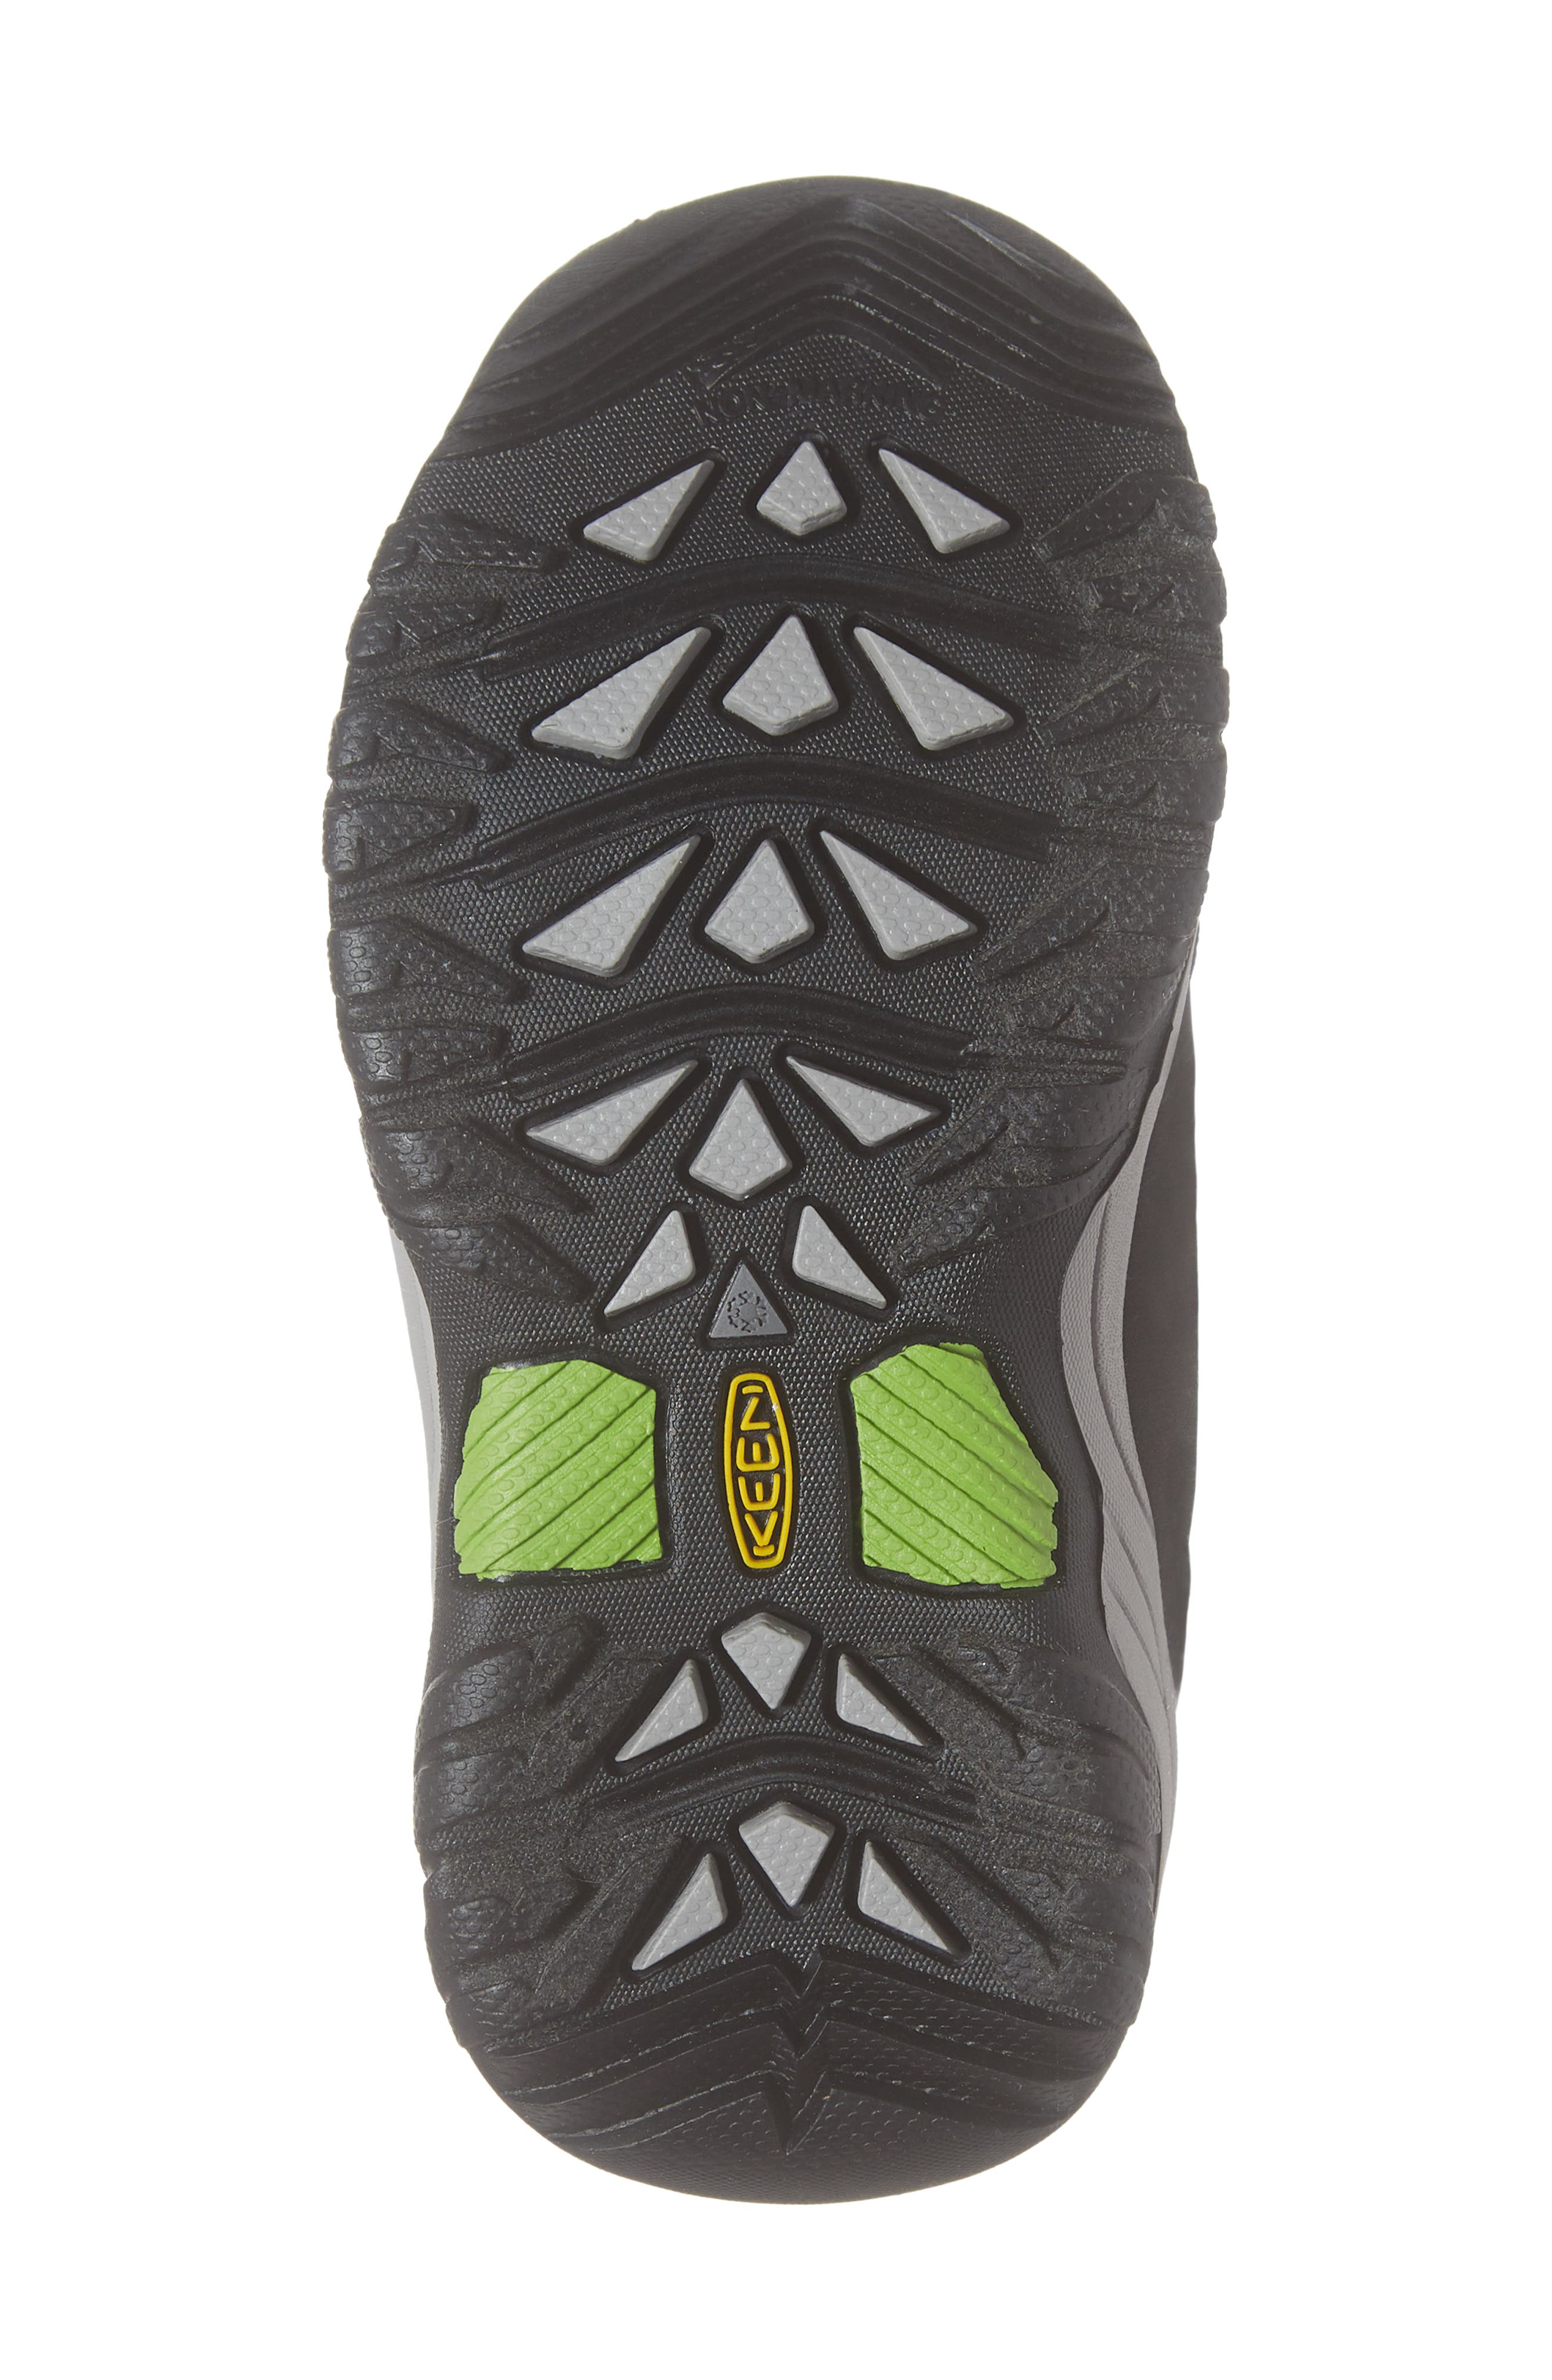 Winterport Neo Waterproof Insulated Boot,                             Alternate thumbnail 6, color,                             BLACK/ GREENERY